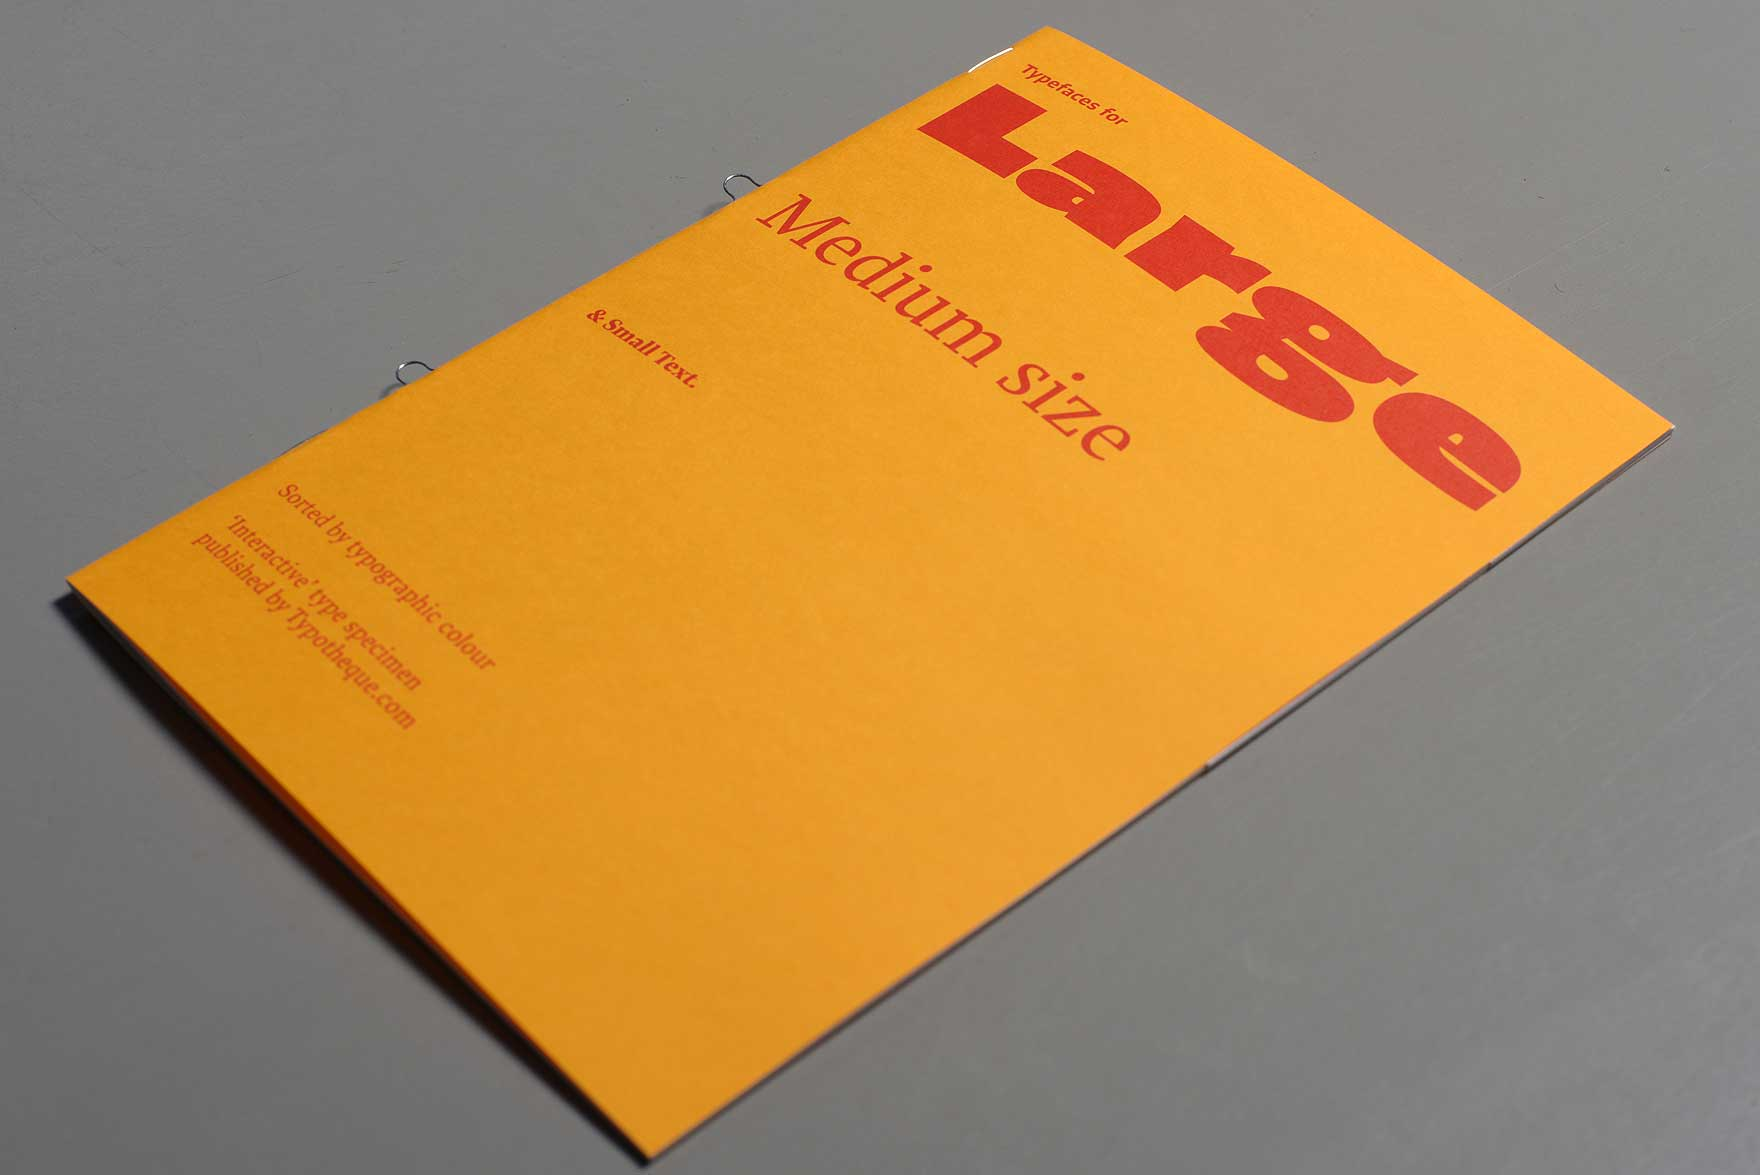 Typotheque type specimen No. 10